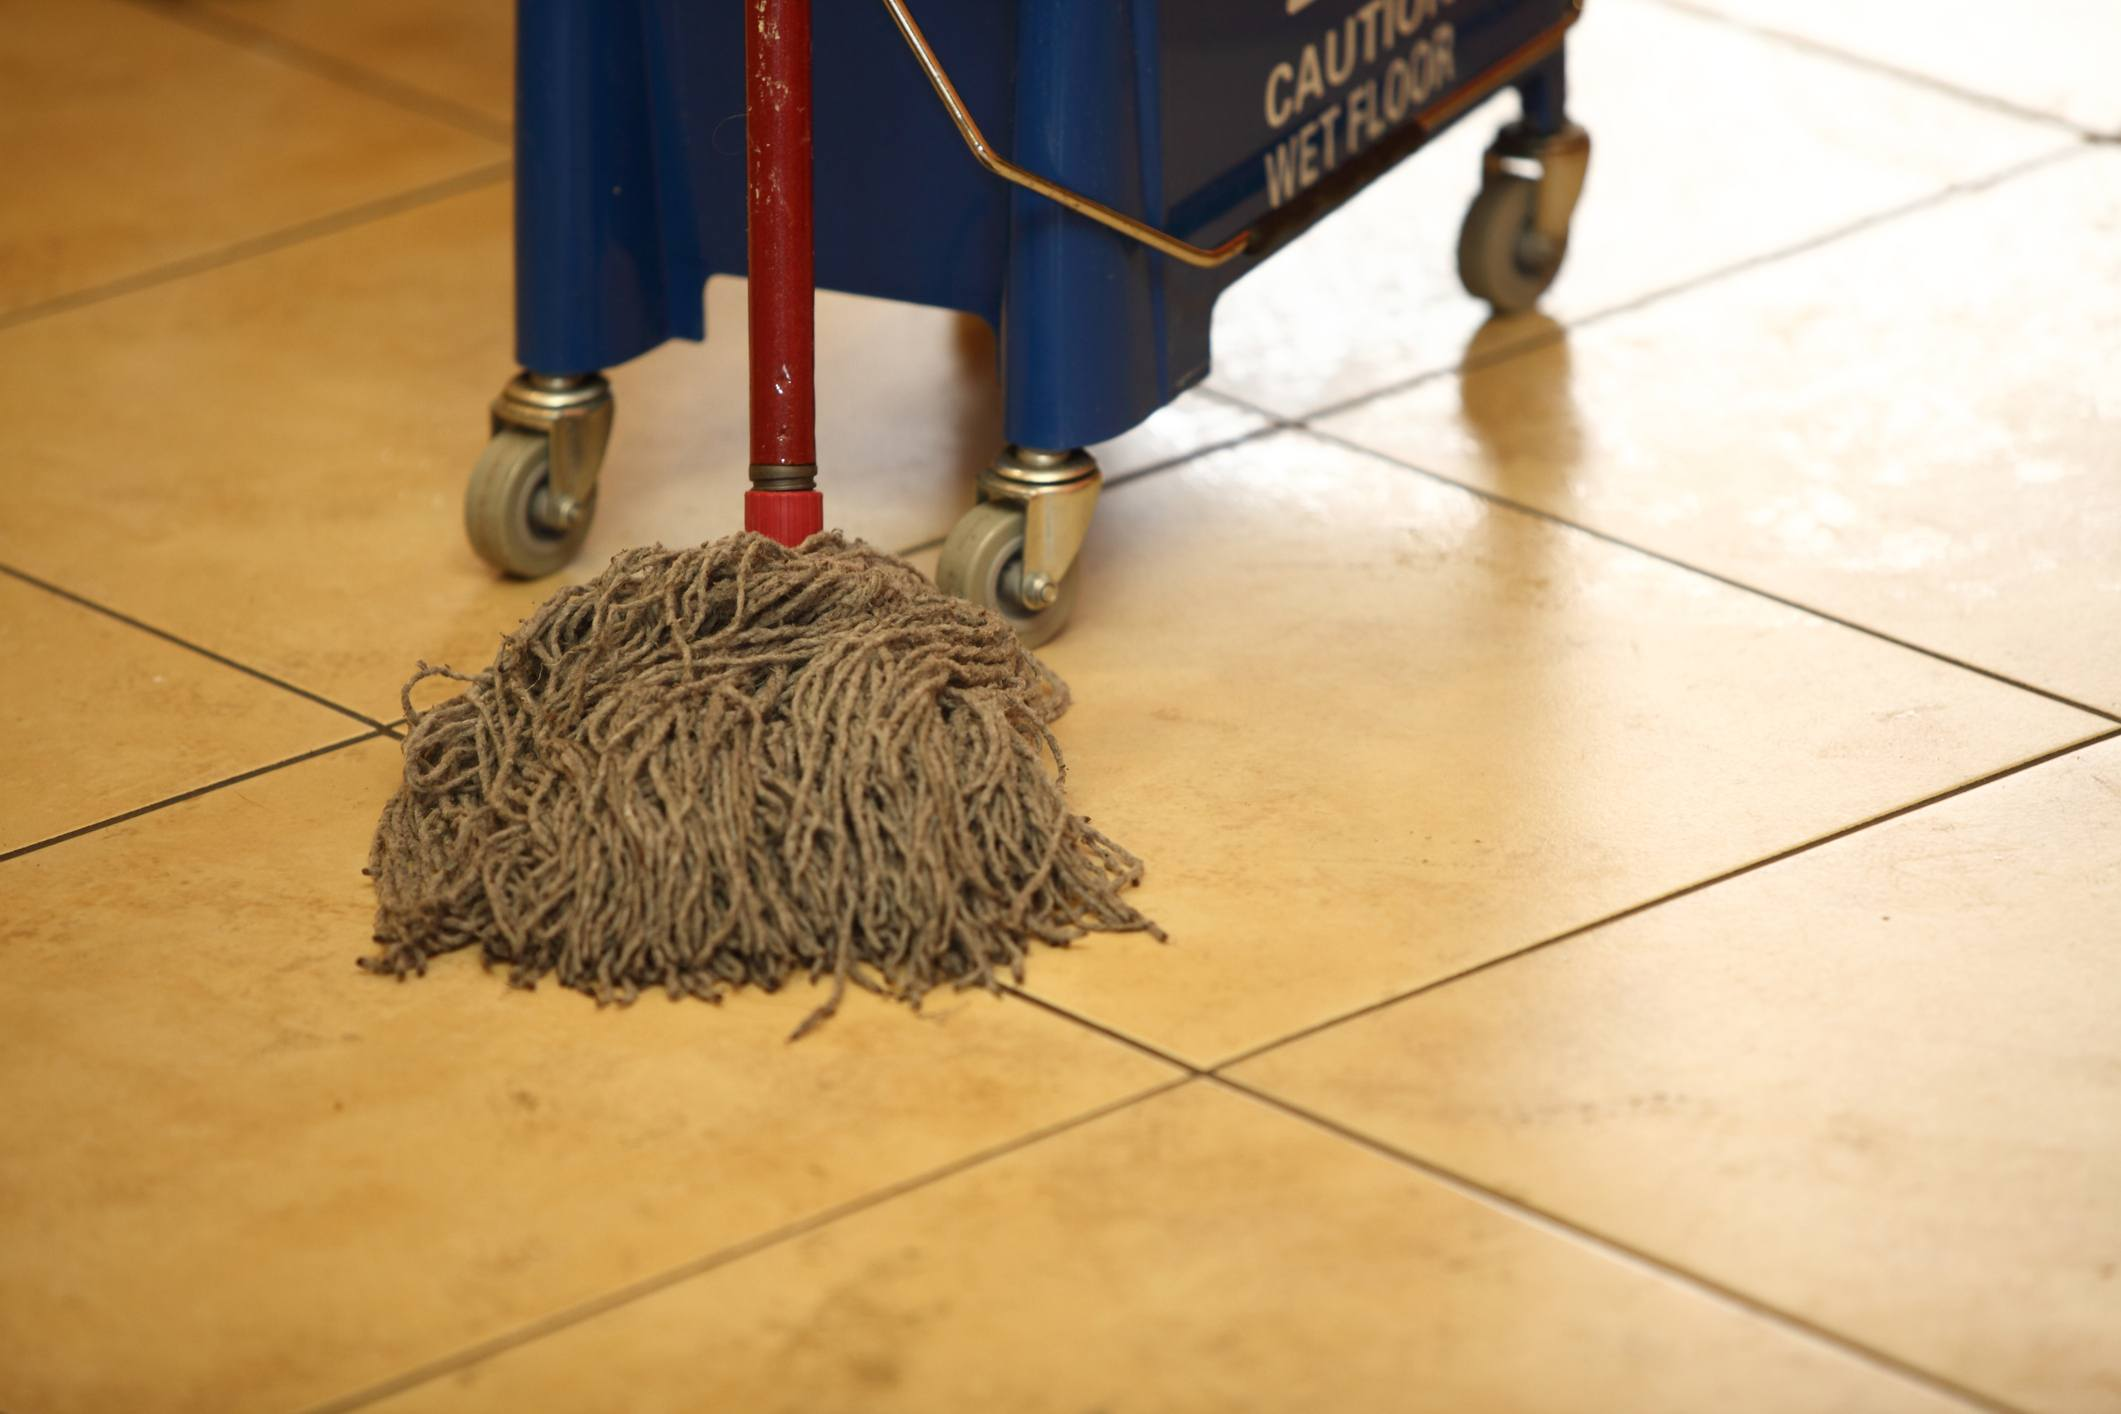 Janitor's mop